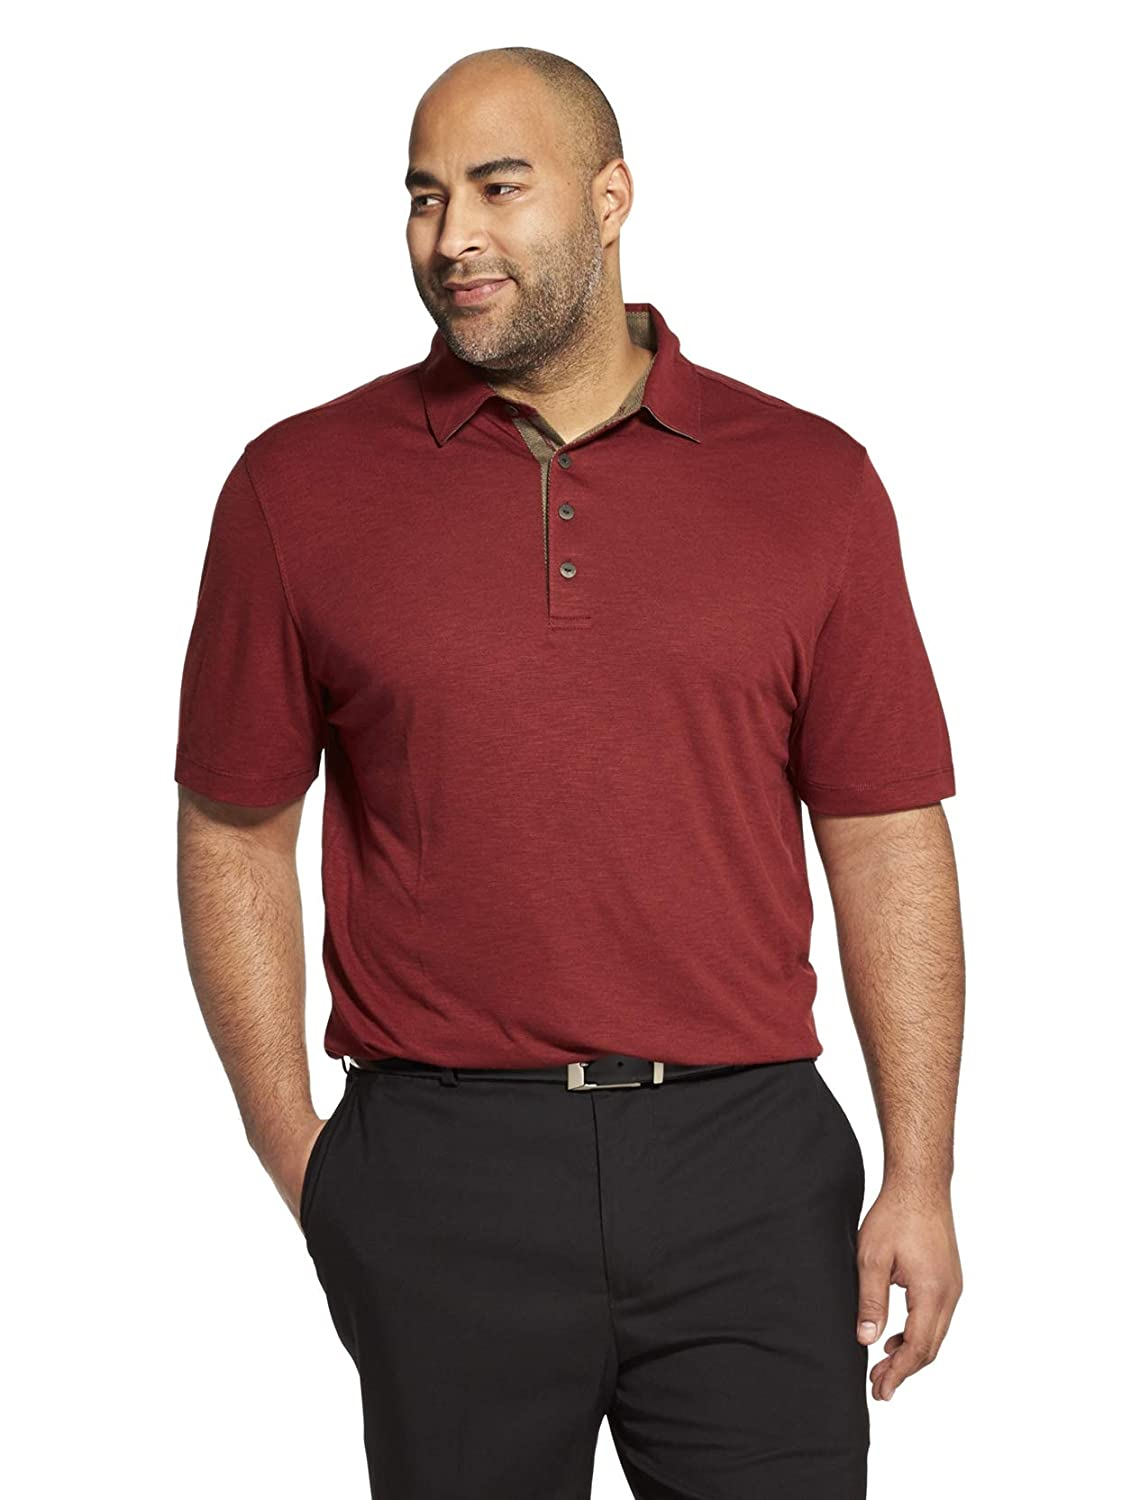 rouge Rusted Root Taille 3XL Hauteur Van Heusen manche courte Air Perforhommece Solid Polo Shirt Homme